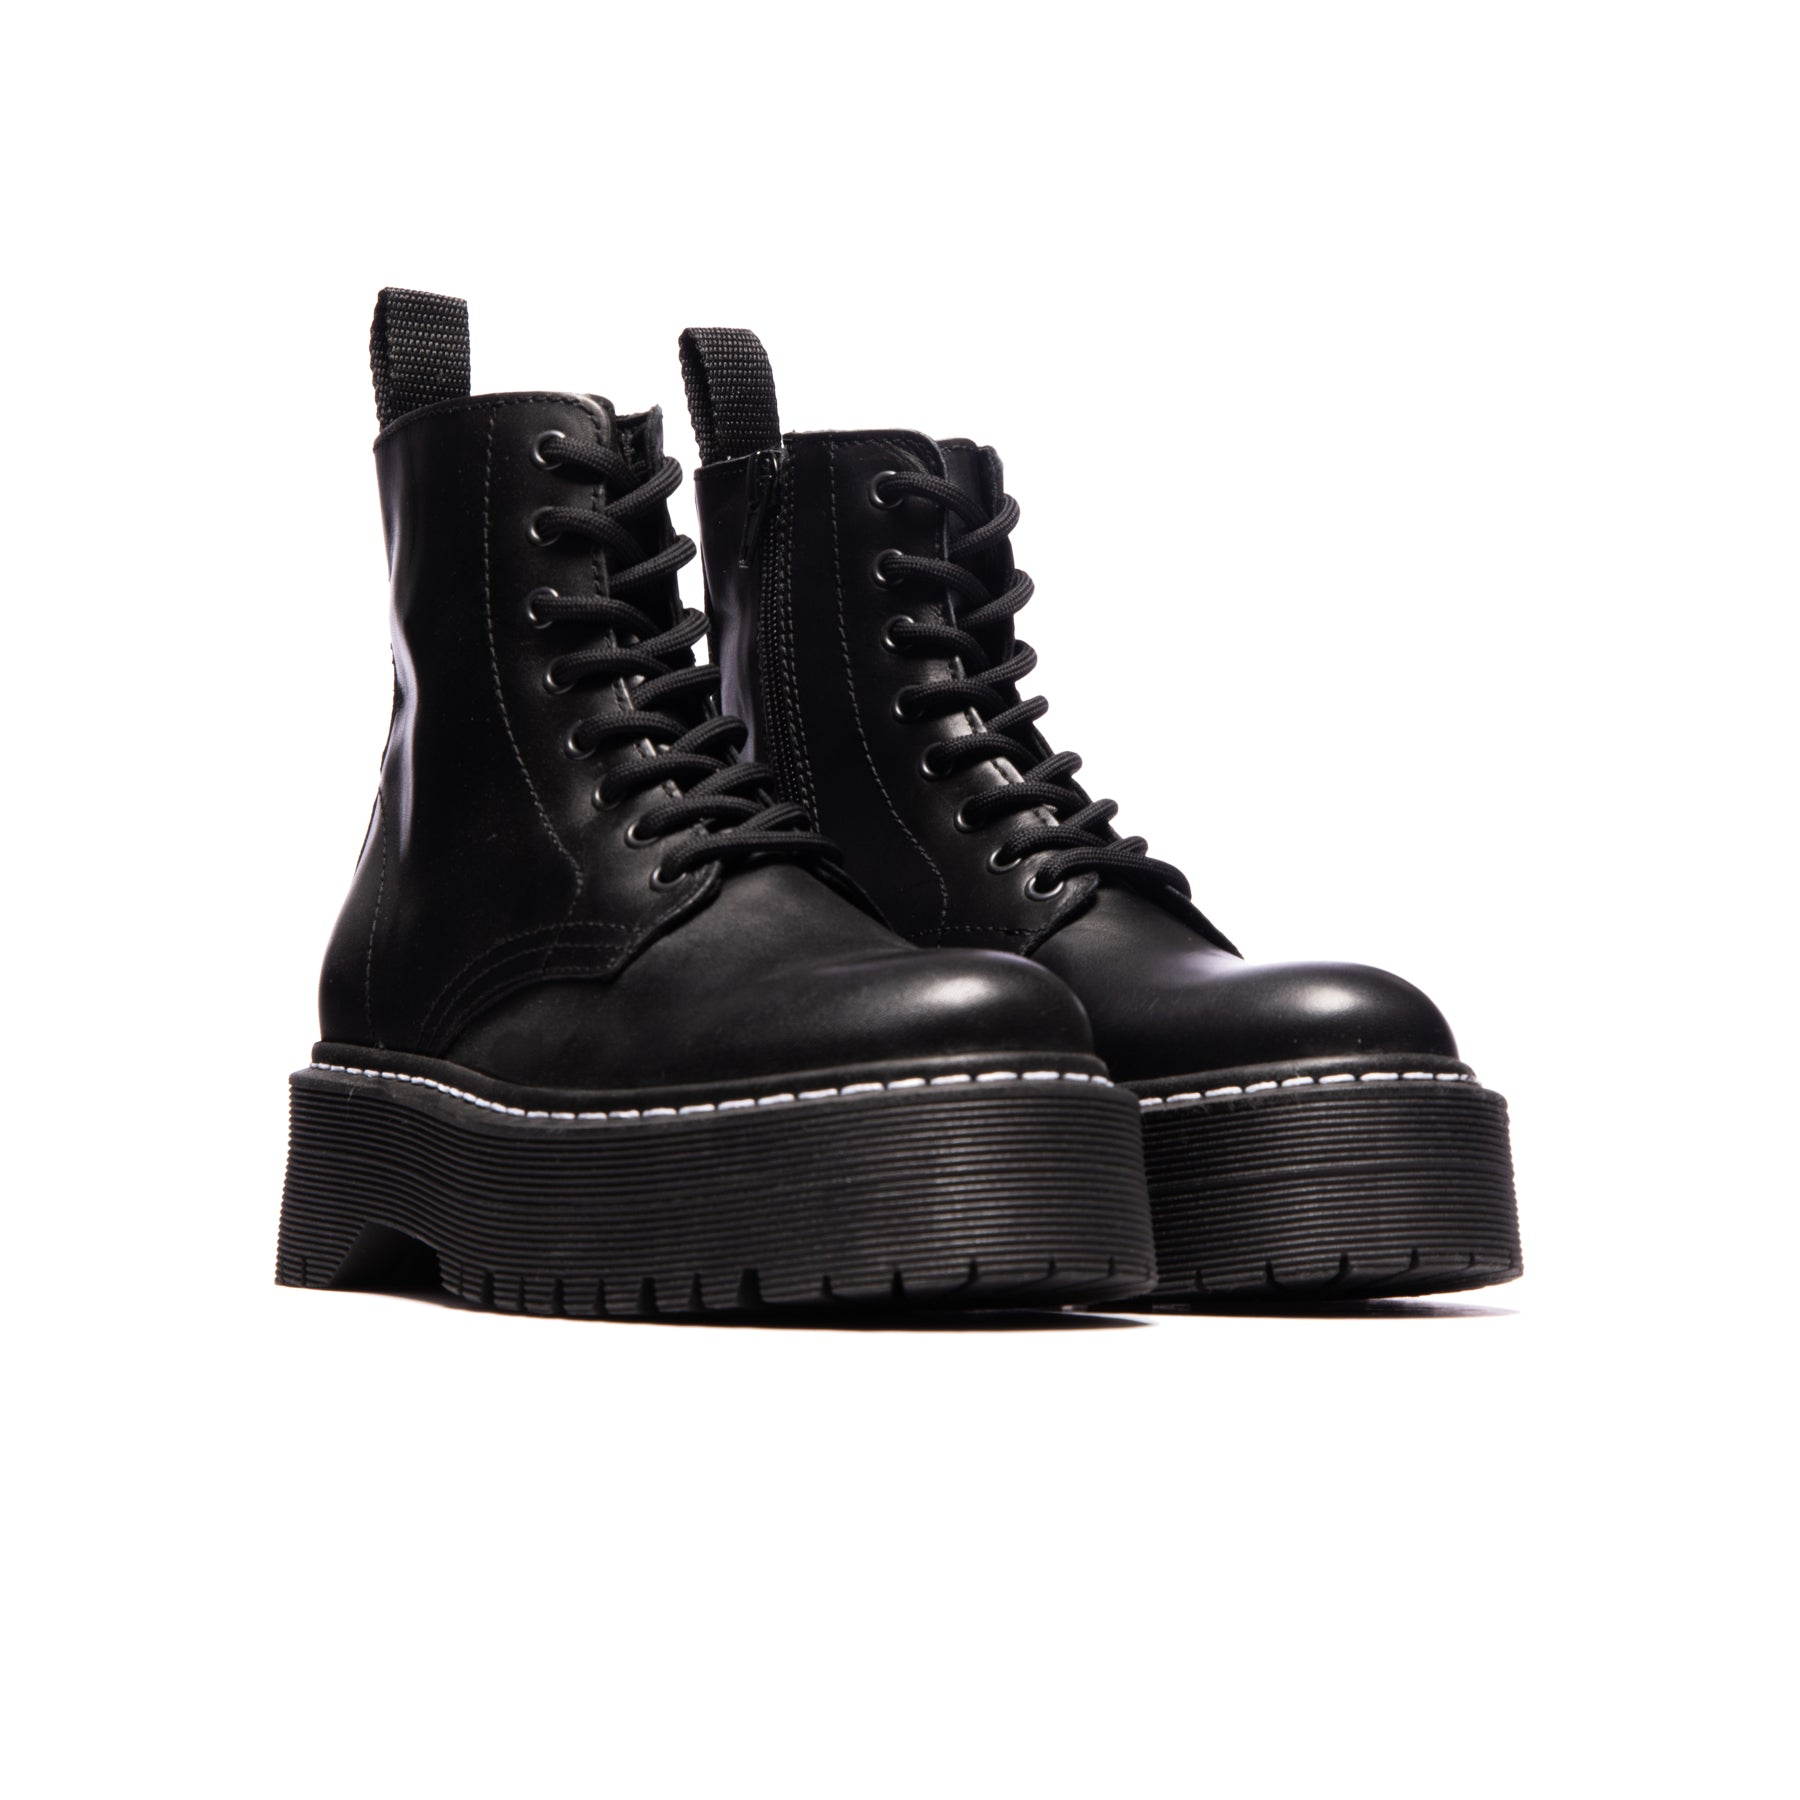 Josta Black Leather